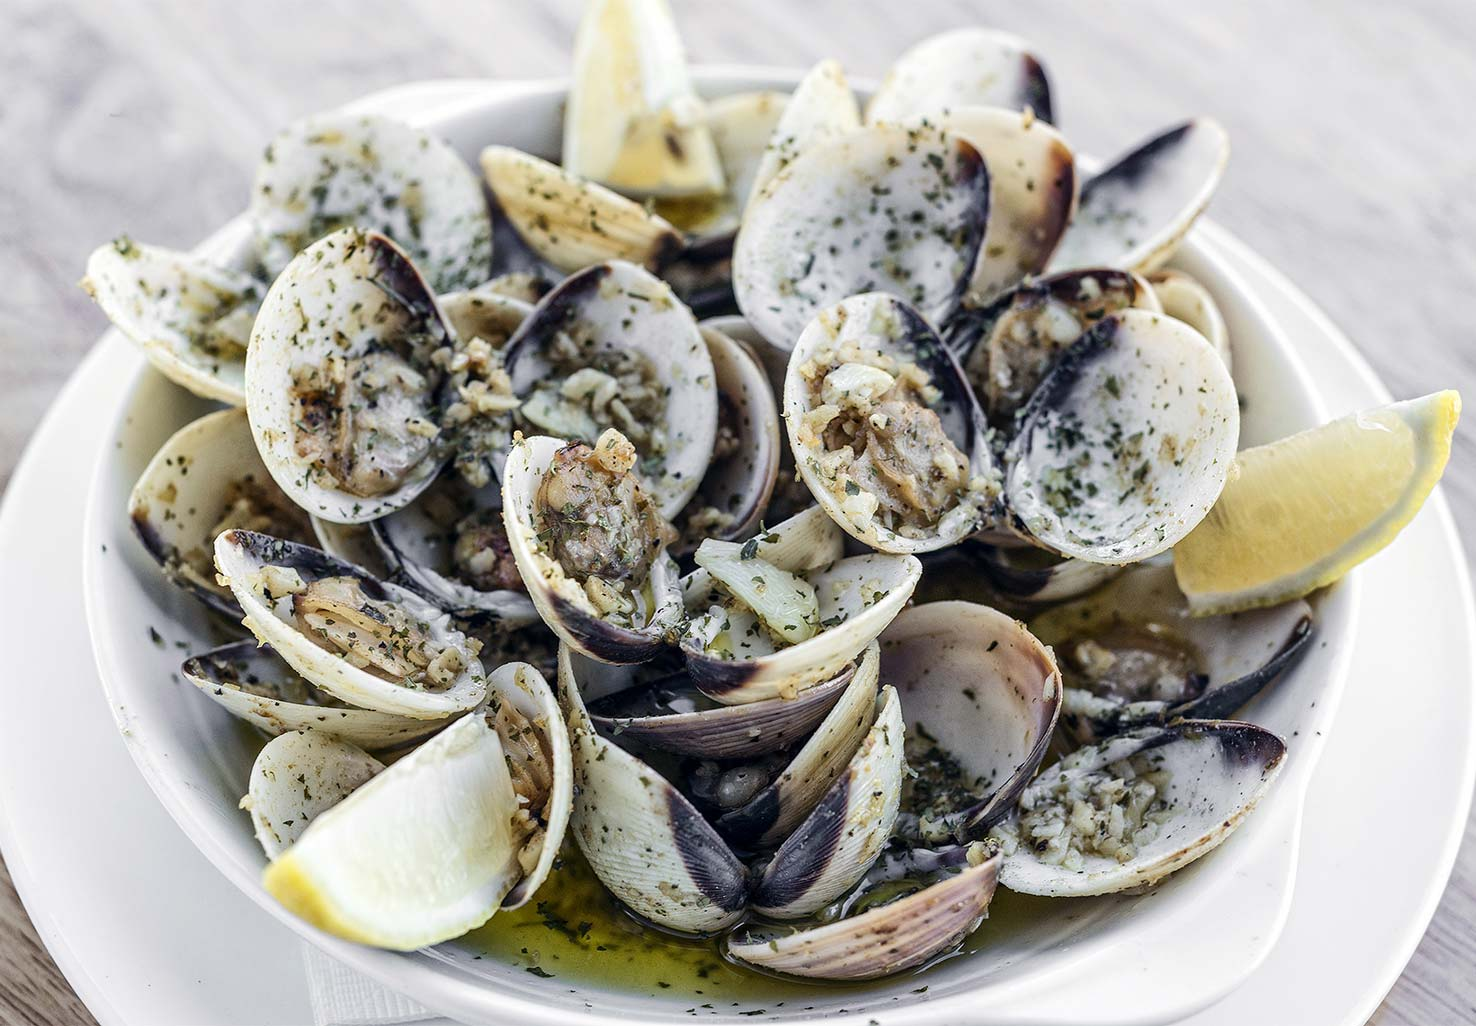 Steamed clams with butter and lemon